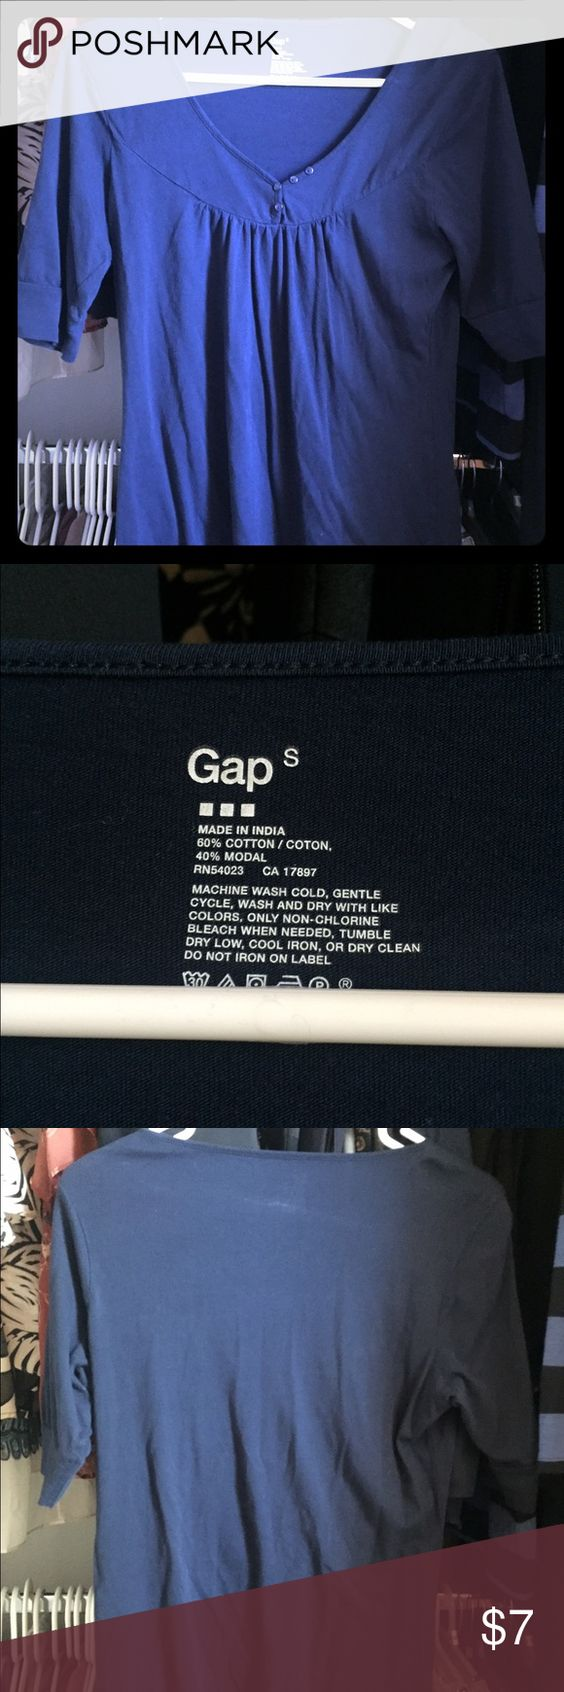 GAP Navy Blue top Navy blue top by GAP. Short sleeve. V neck front with button design. GAP Tops Tees - Short Sleeve